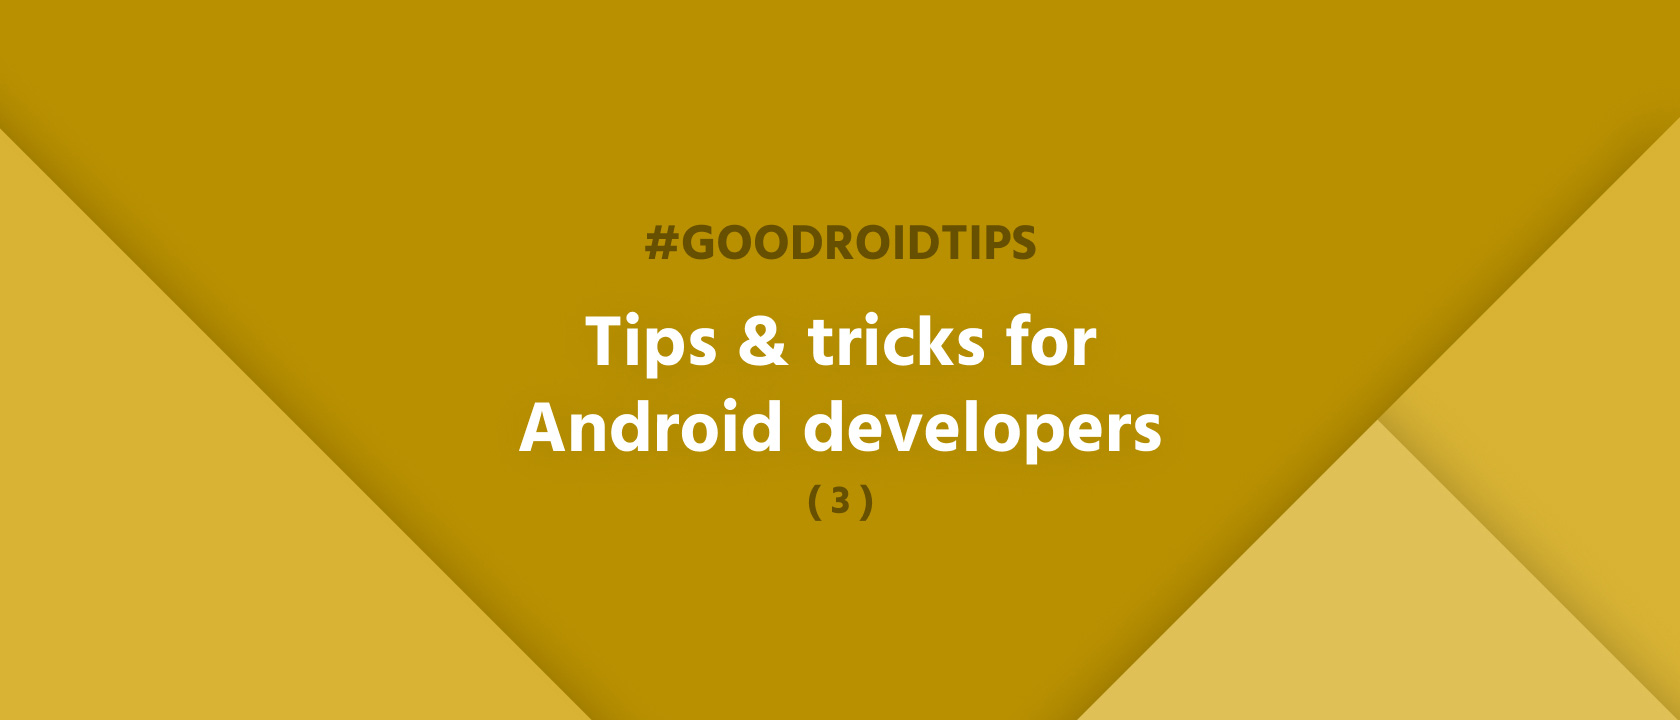 #goodroidtips III. - Tips for Android developers